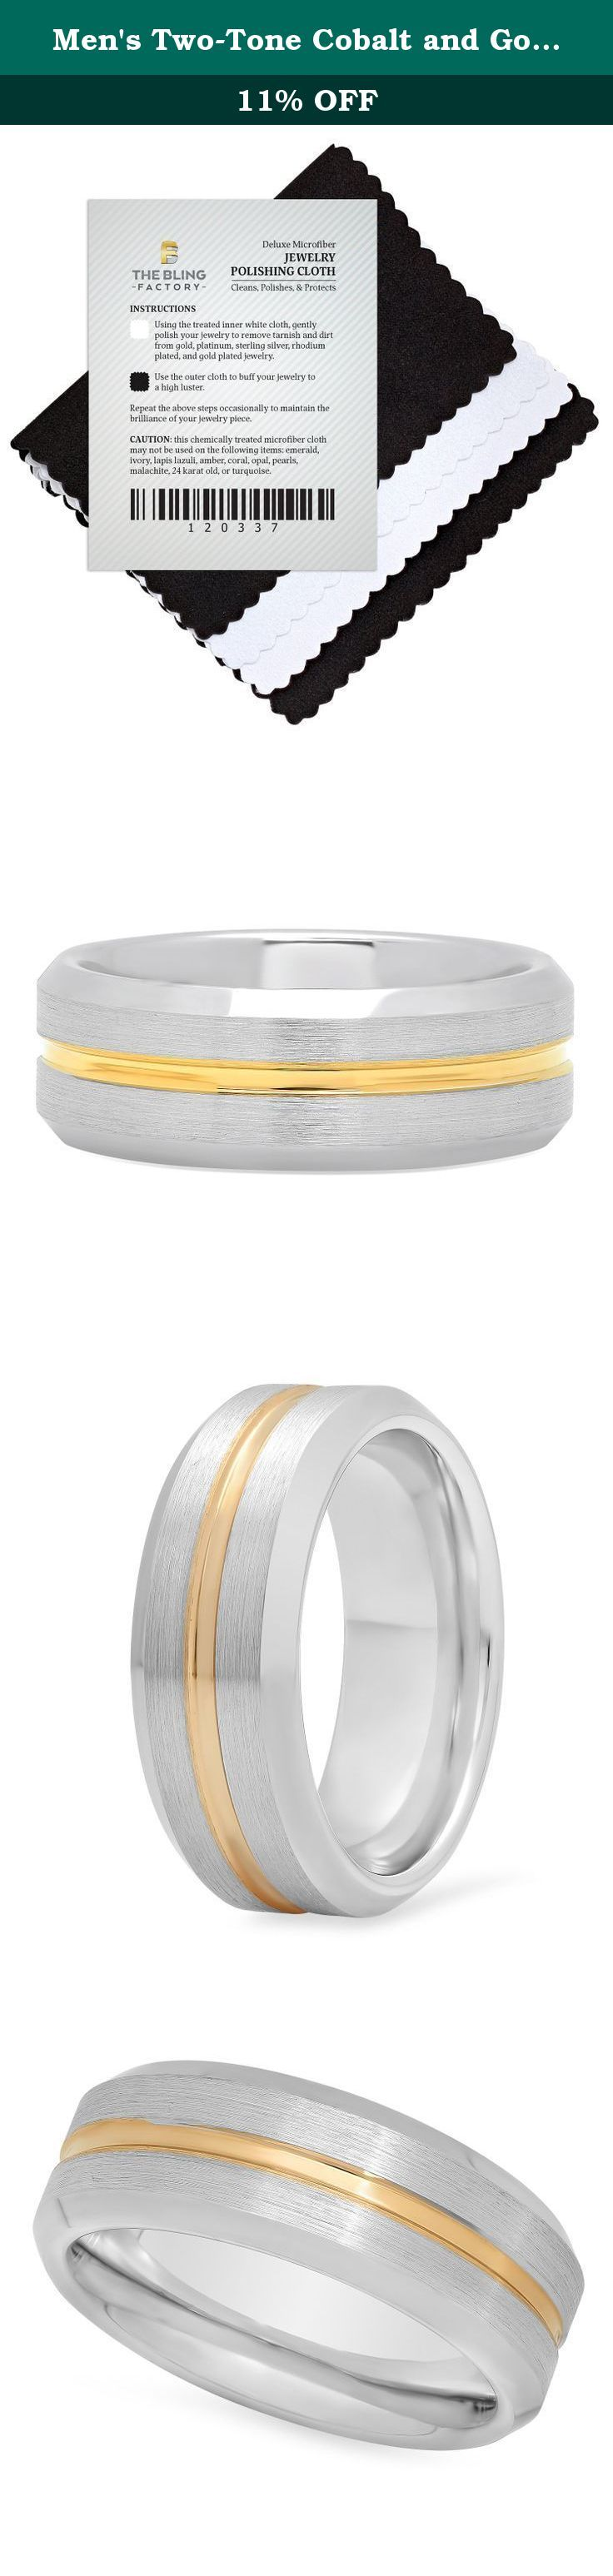 Men's Two-Tone Cobalt and Gold Plated 8mm Comfort Fit Wedding Ring, Size 15. This men's comfort fit band is composed of durable cobalt metal and features a high polished finish. It displays a smooth brushed center along with a yellow gold plated centered groove. This 8mm ring features beveled edges for a reflective shine.